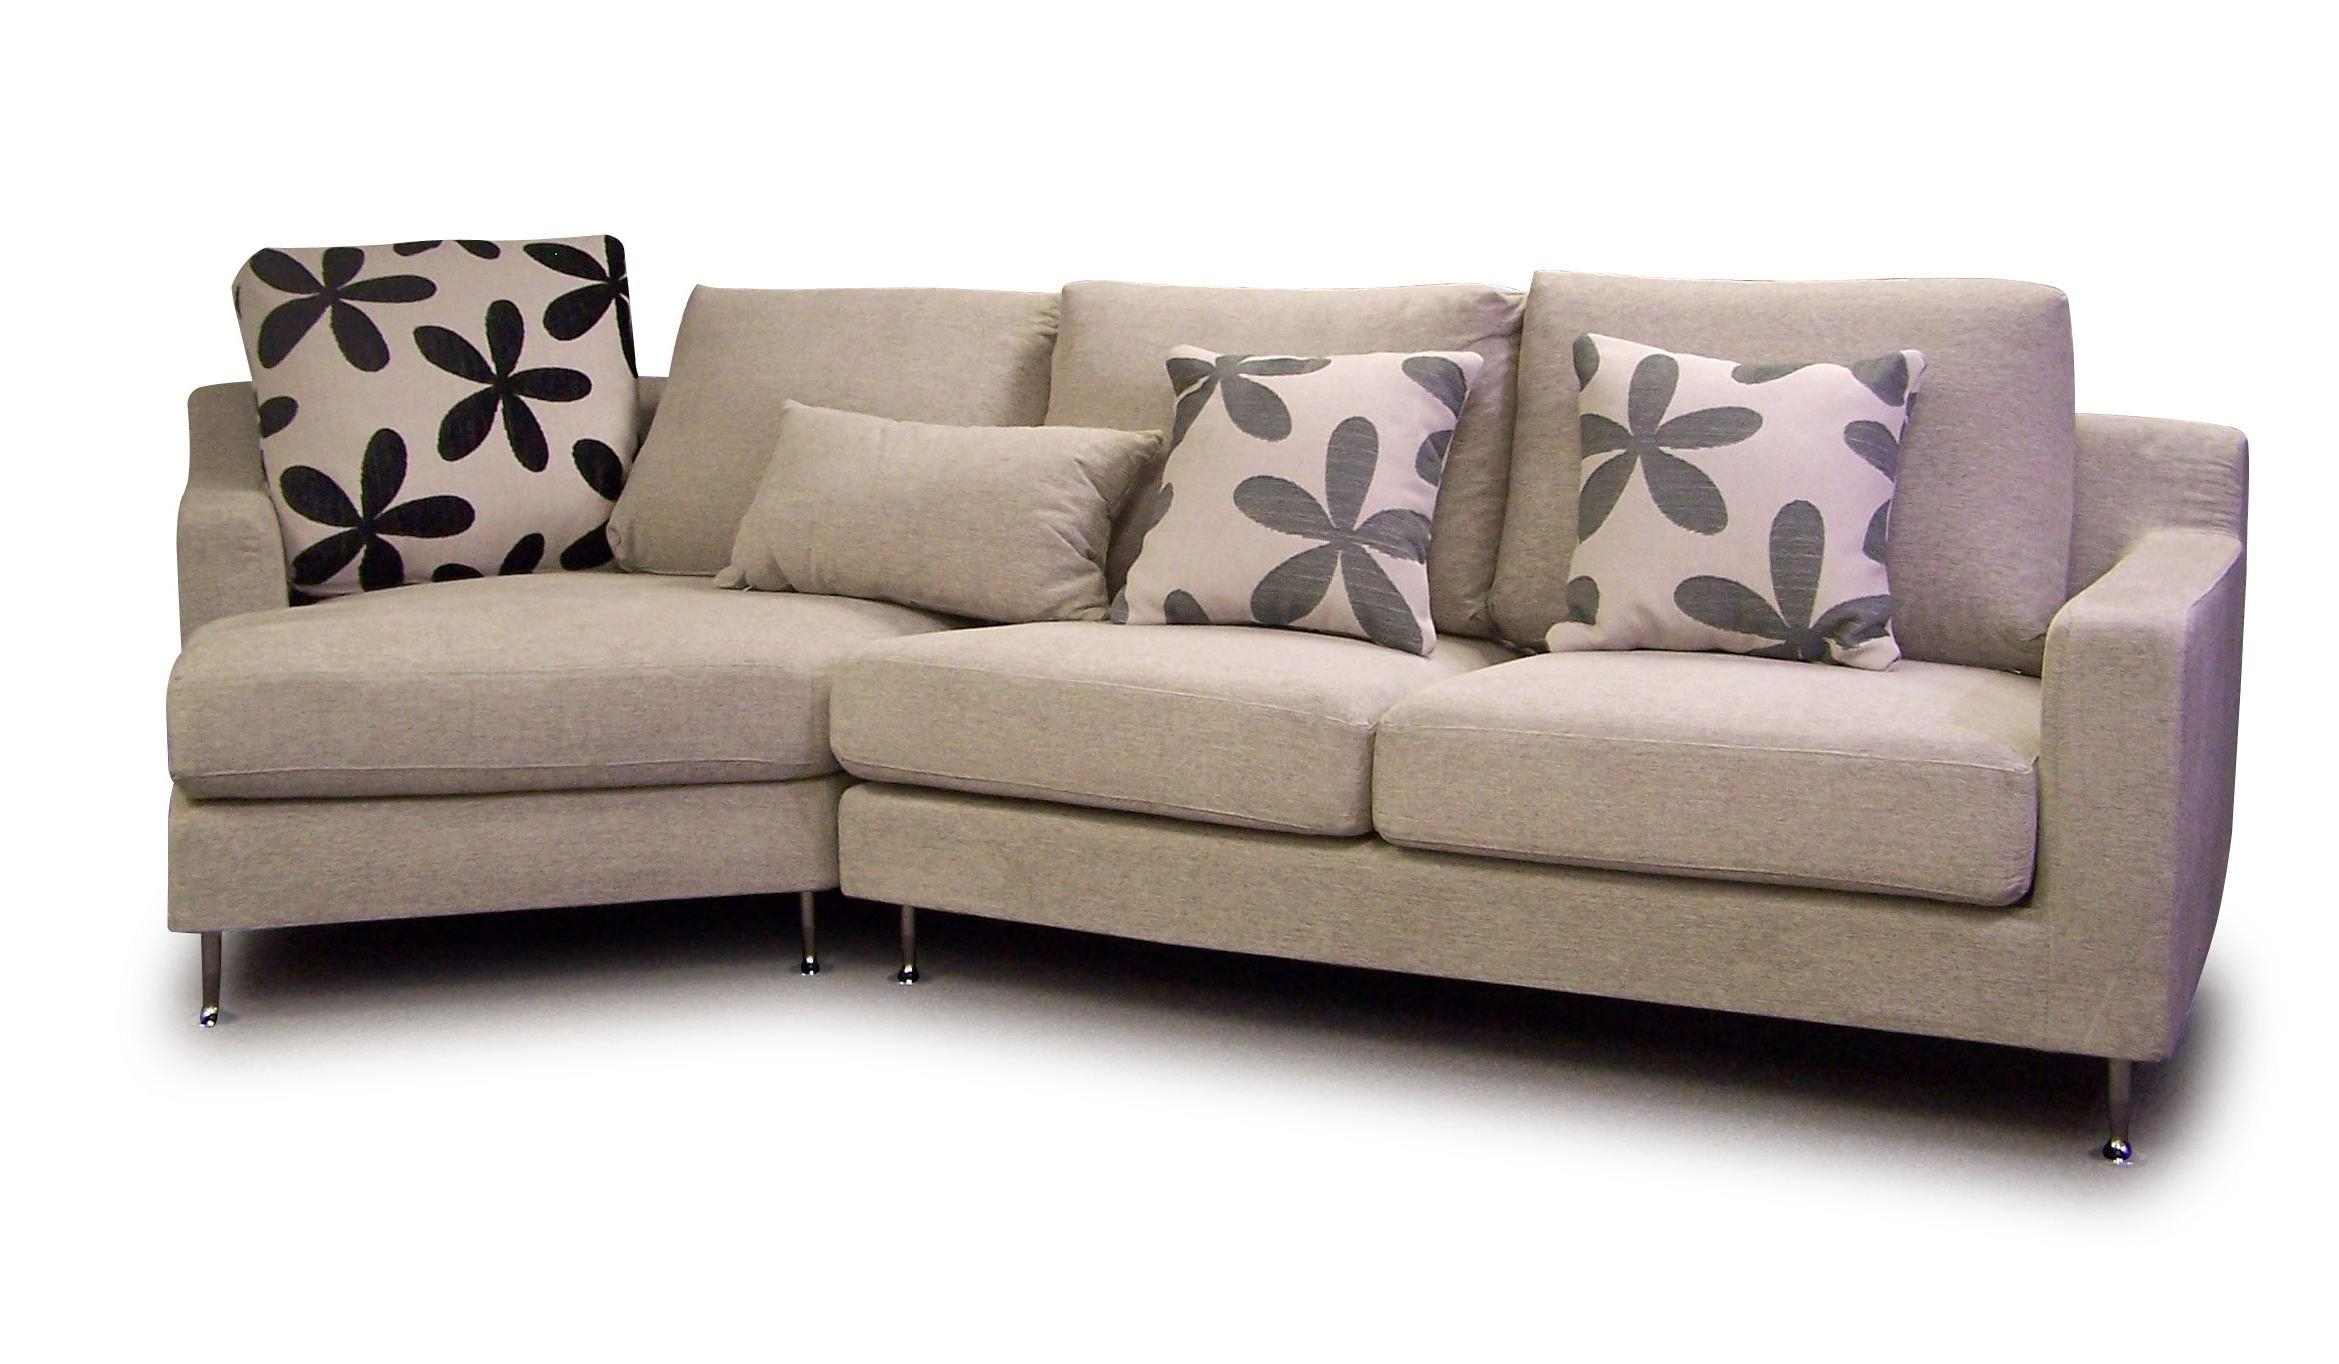 Sofas Center : Sofas For Sale Cheap In Brooklyn Ny Used Leather Intended For Cheap Sofas Houston (Image 20 of 20)